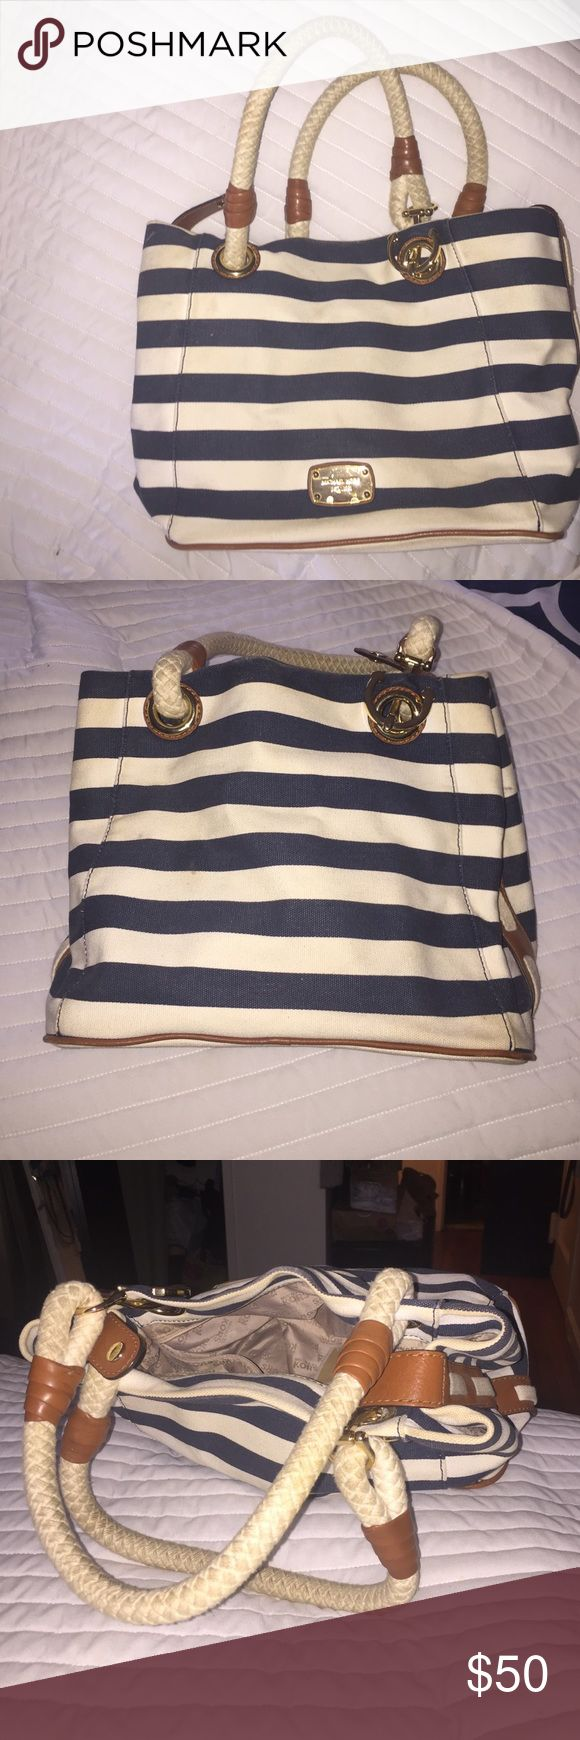 Micheal Kors shoulder bag. Has a lot of wear as white stripes are more cream now. Okay condition. I think a good dry cleaning would work well. But not really sure. KORS Michael Kors Bags Shoulder Bags